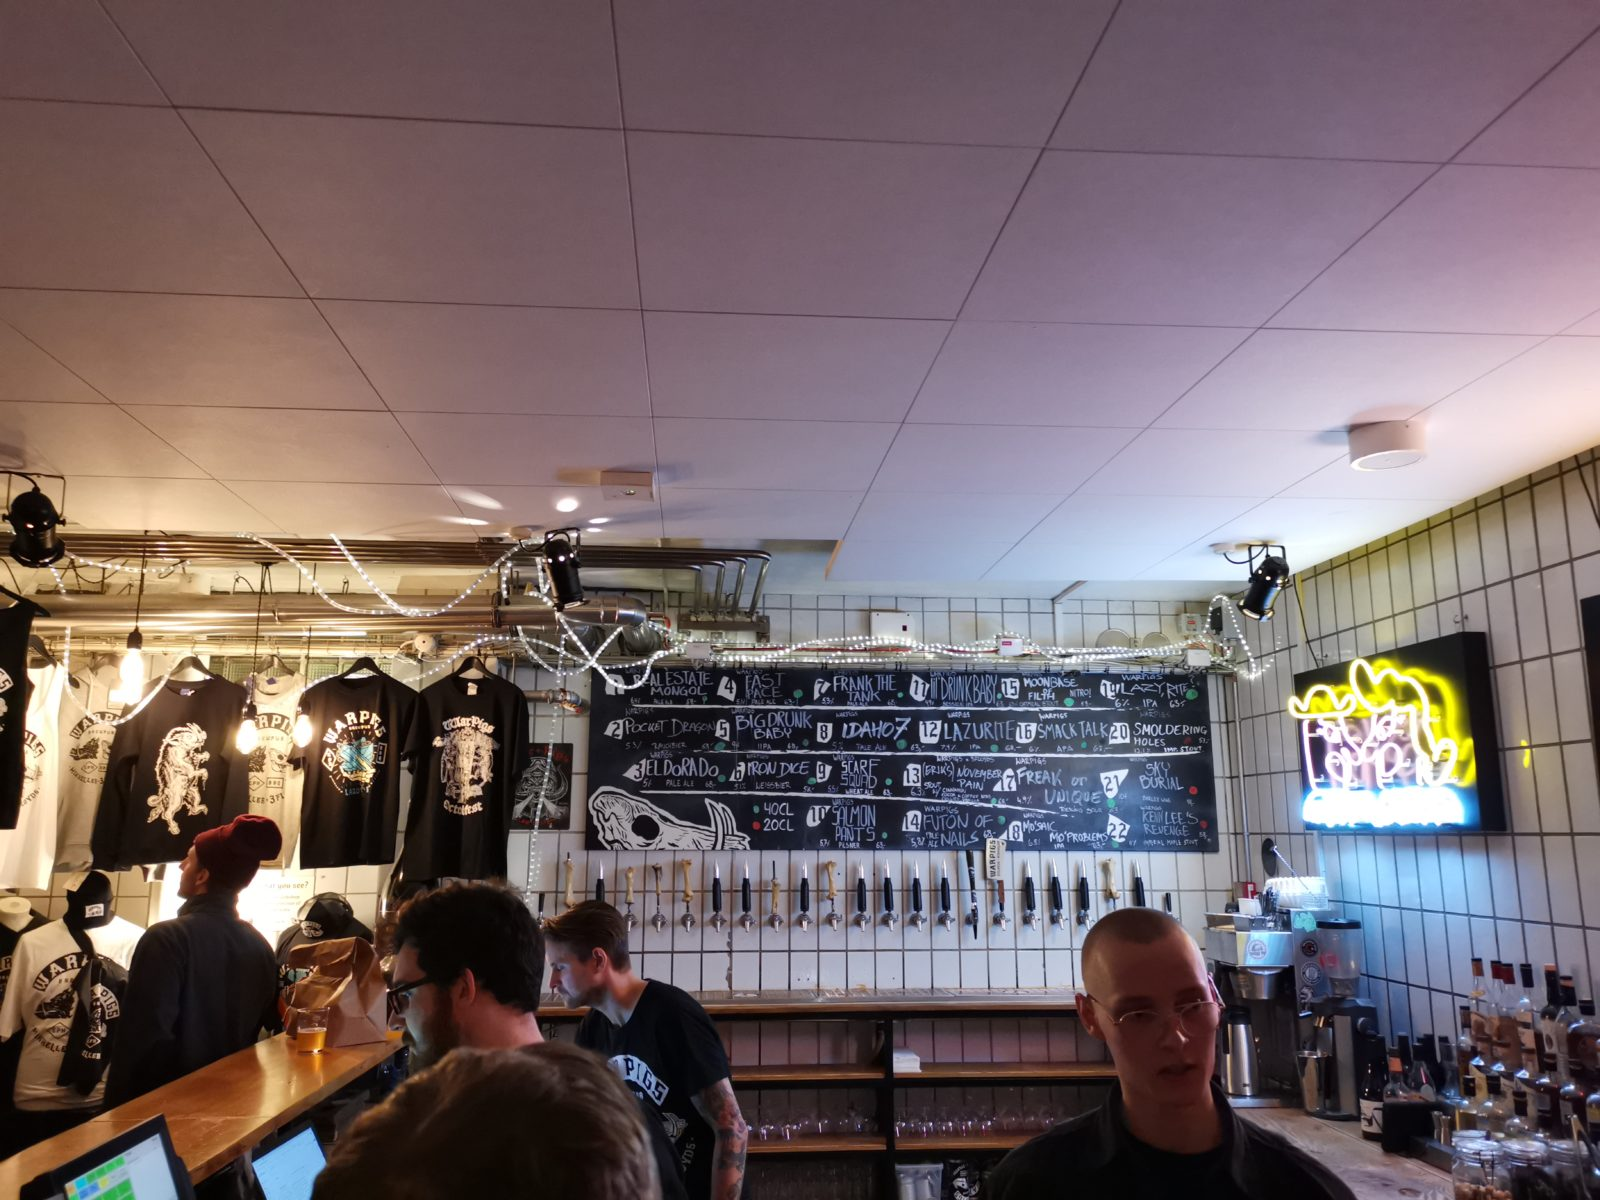 Mikkeller beers at Warpigs Copenhagen